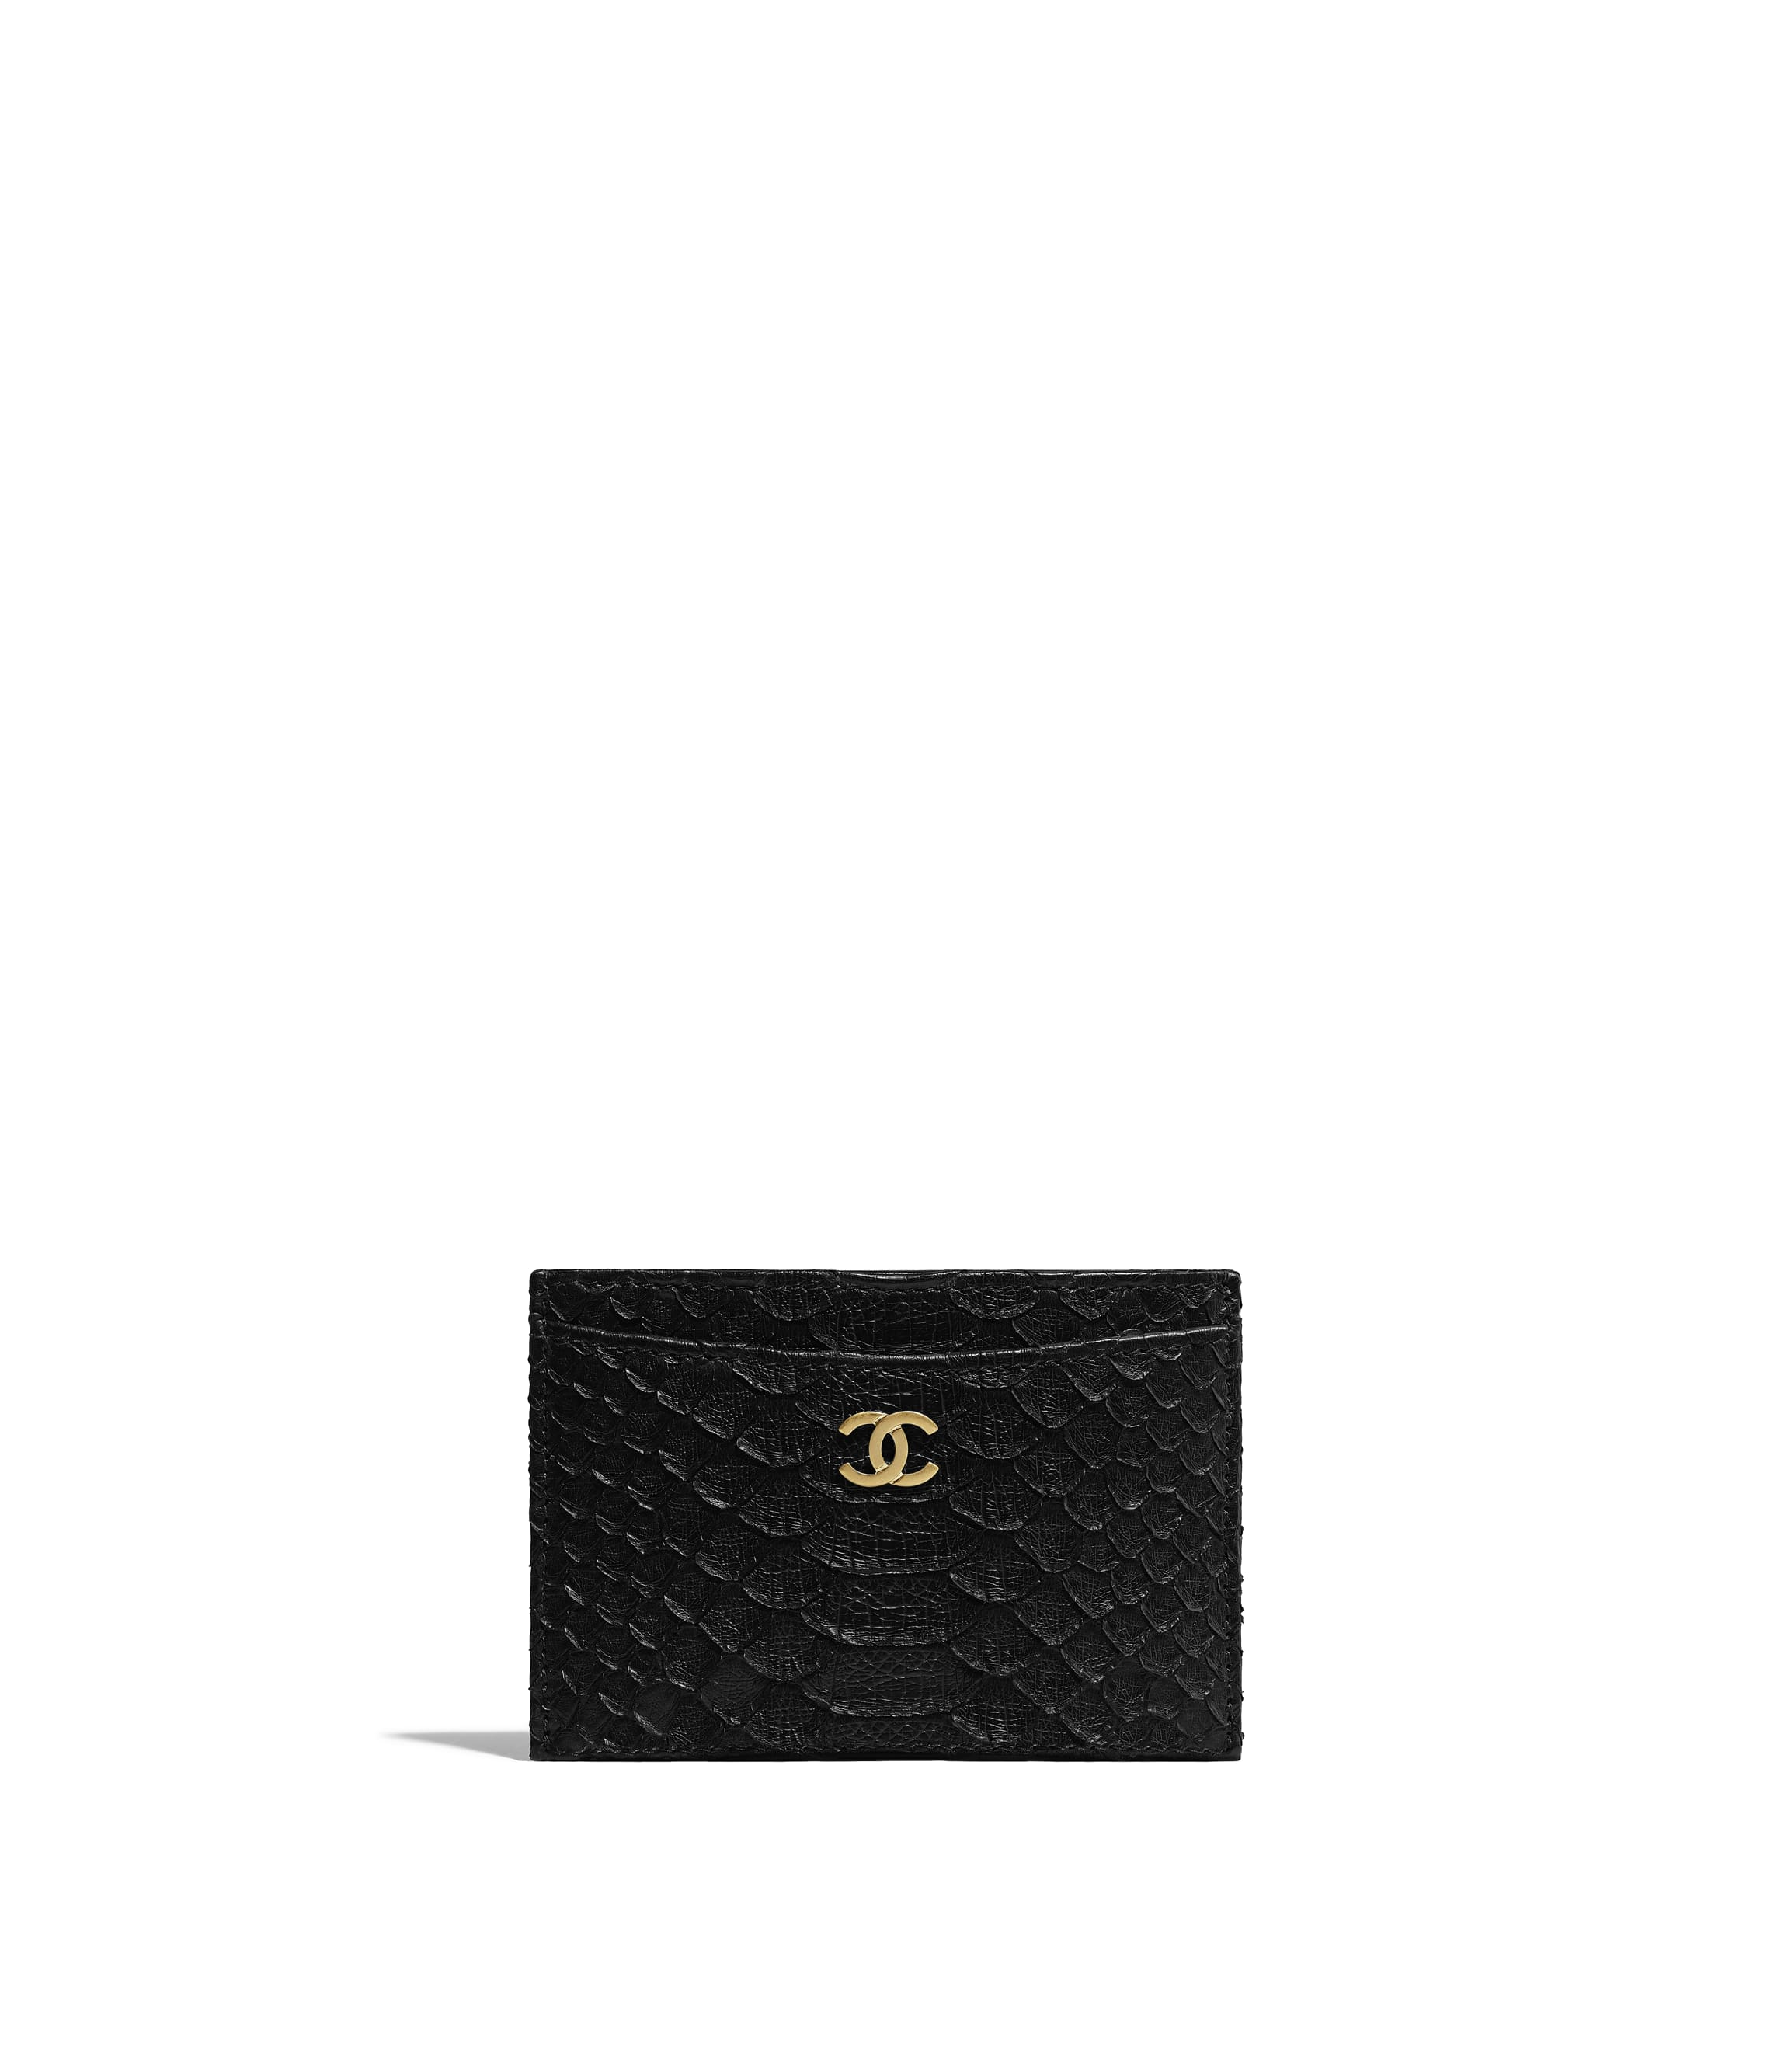 Card Holders - Small Leather Goods - CHANEL